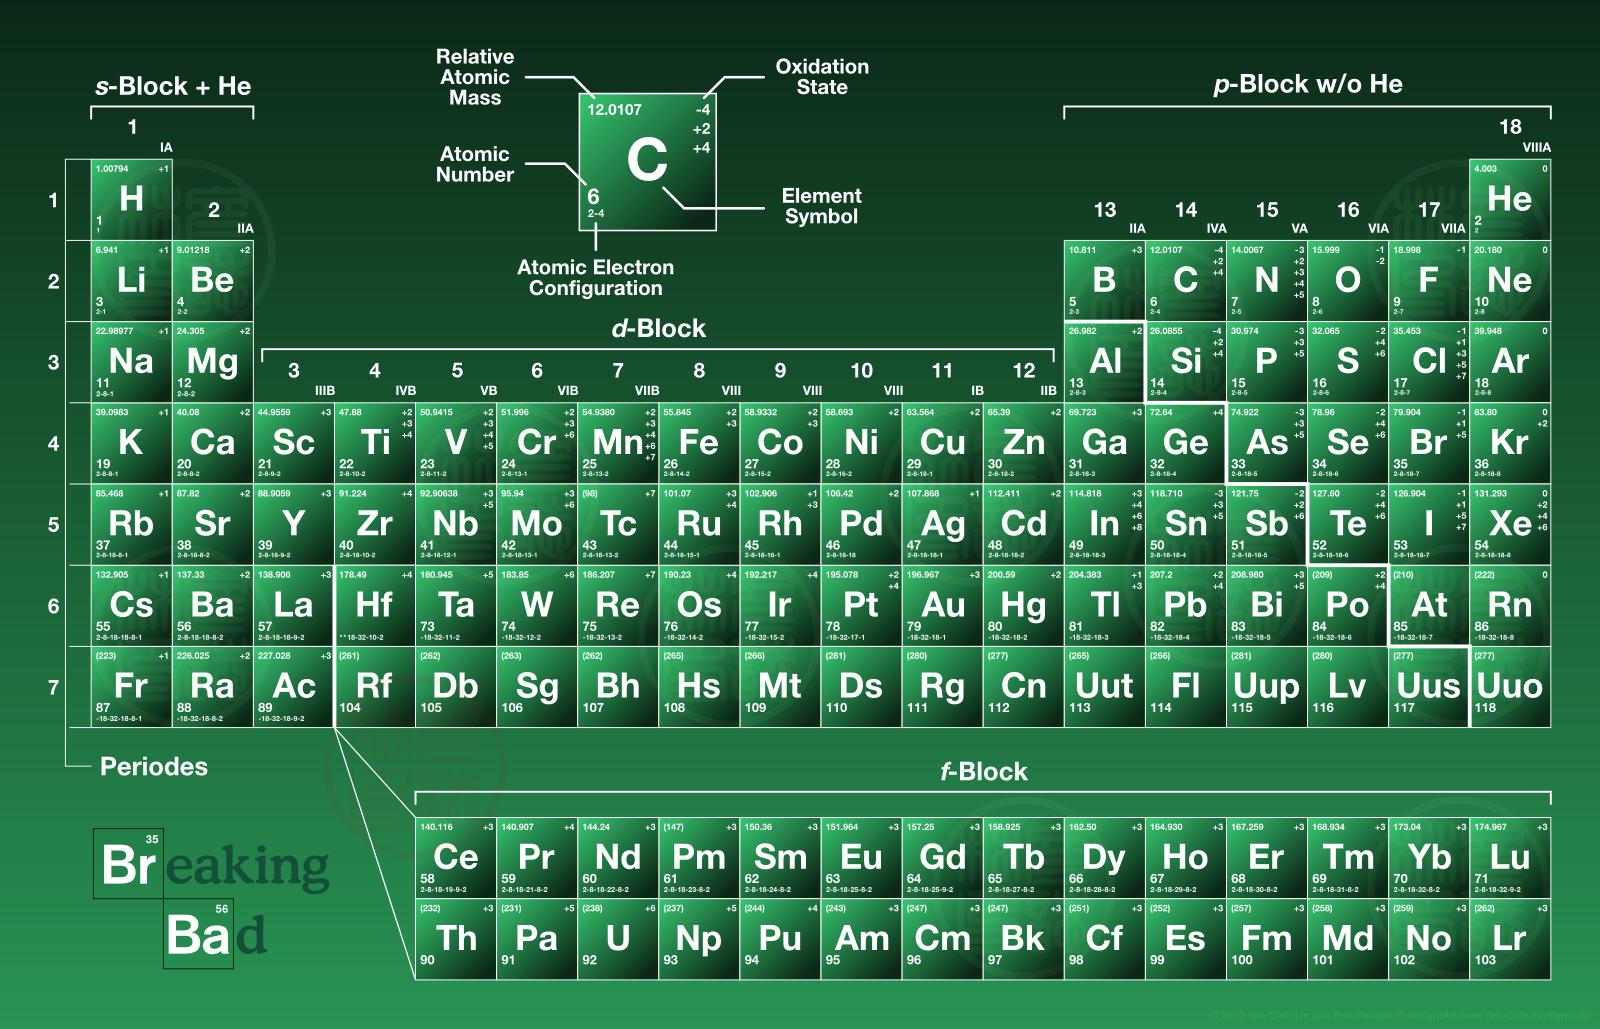 New breaking bad periodic table name generator android breaking bad generator table periodic name android name generator bad age table periodic bad breaking breaking urtaz